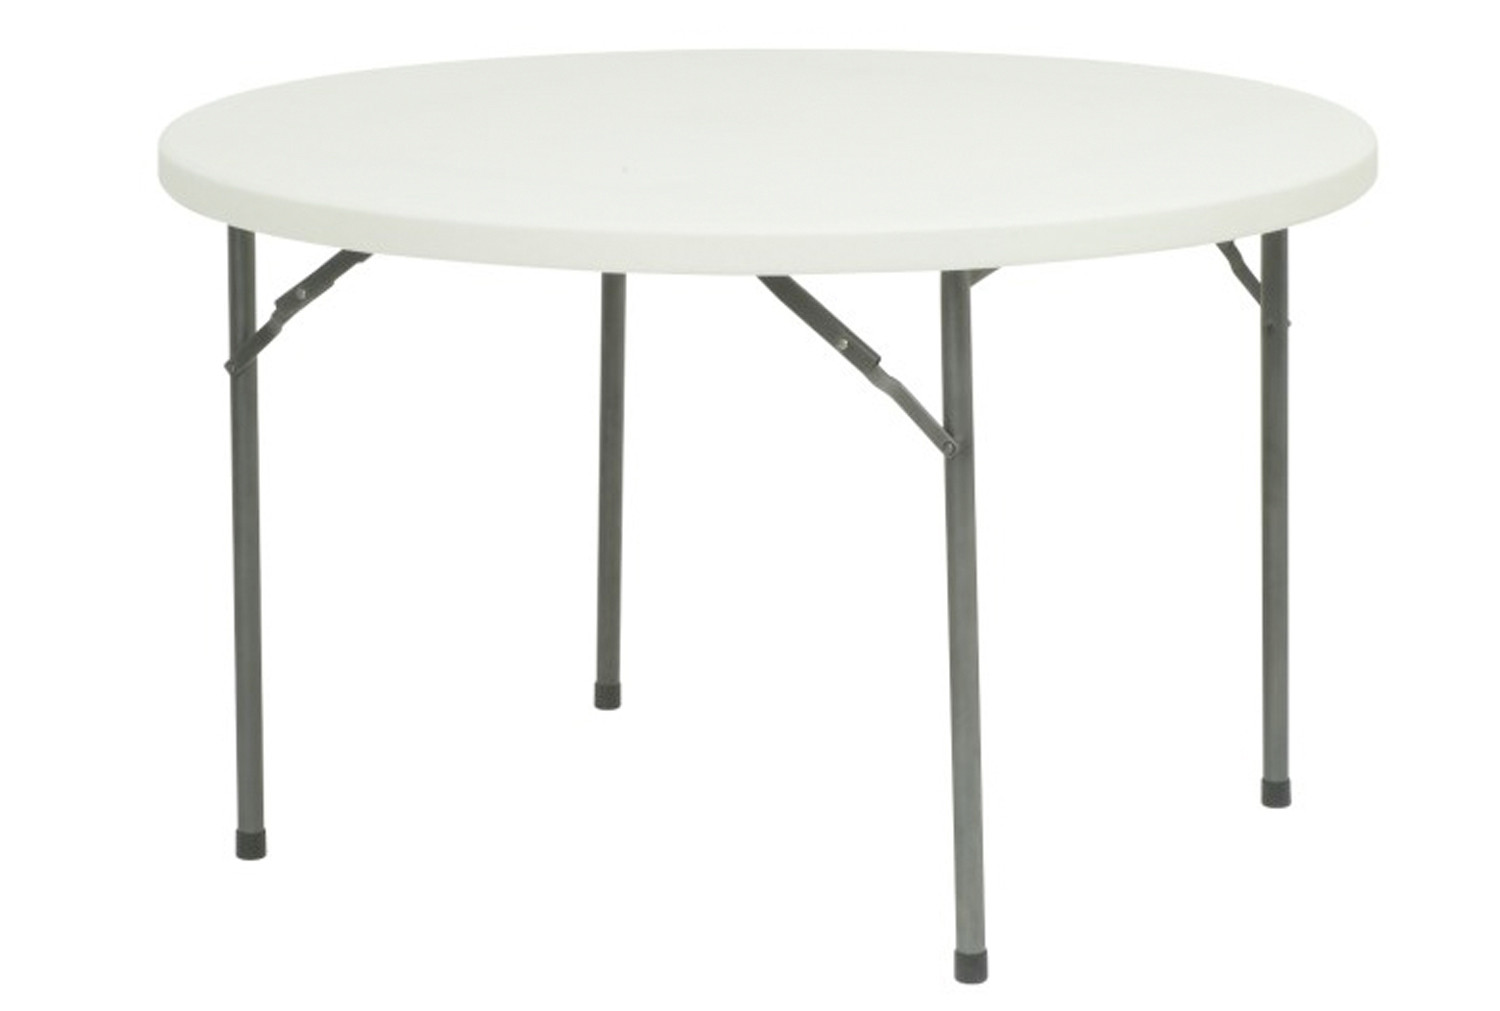 Rosenberg Lightweight Round Folding Tables